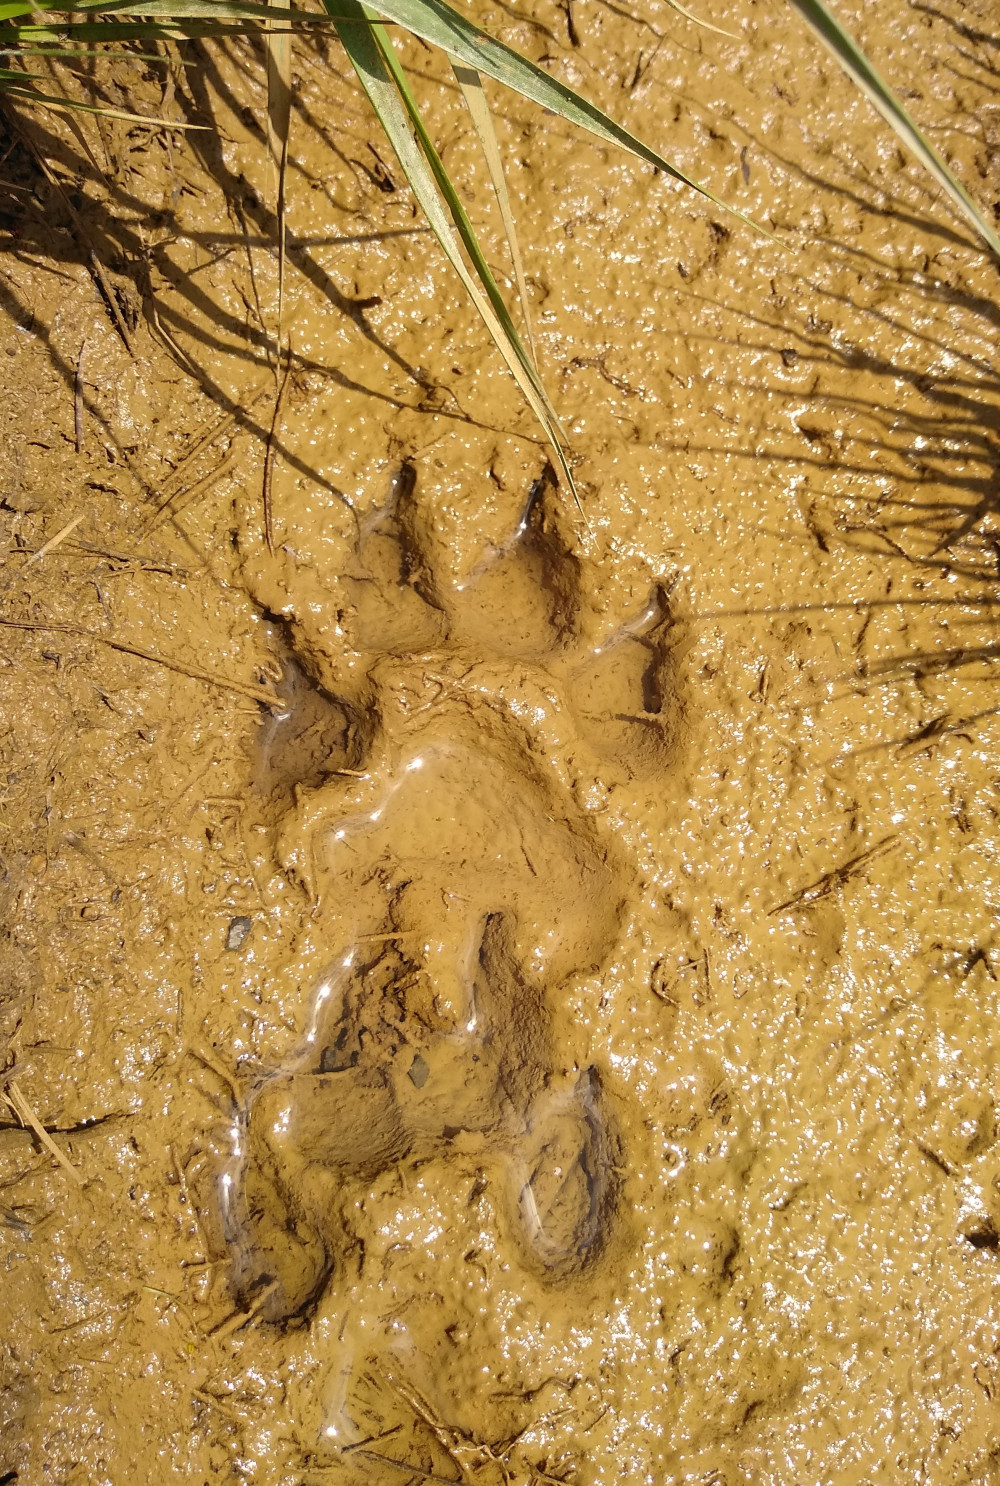 Wolf's paw spotted in the forests of Kočevje by our campers.